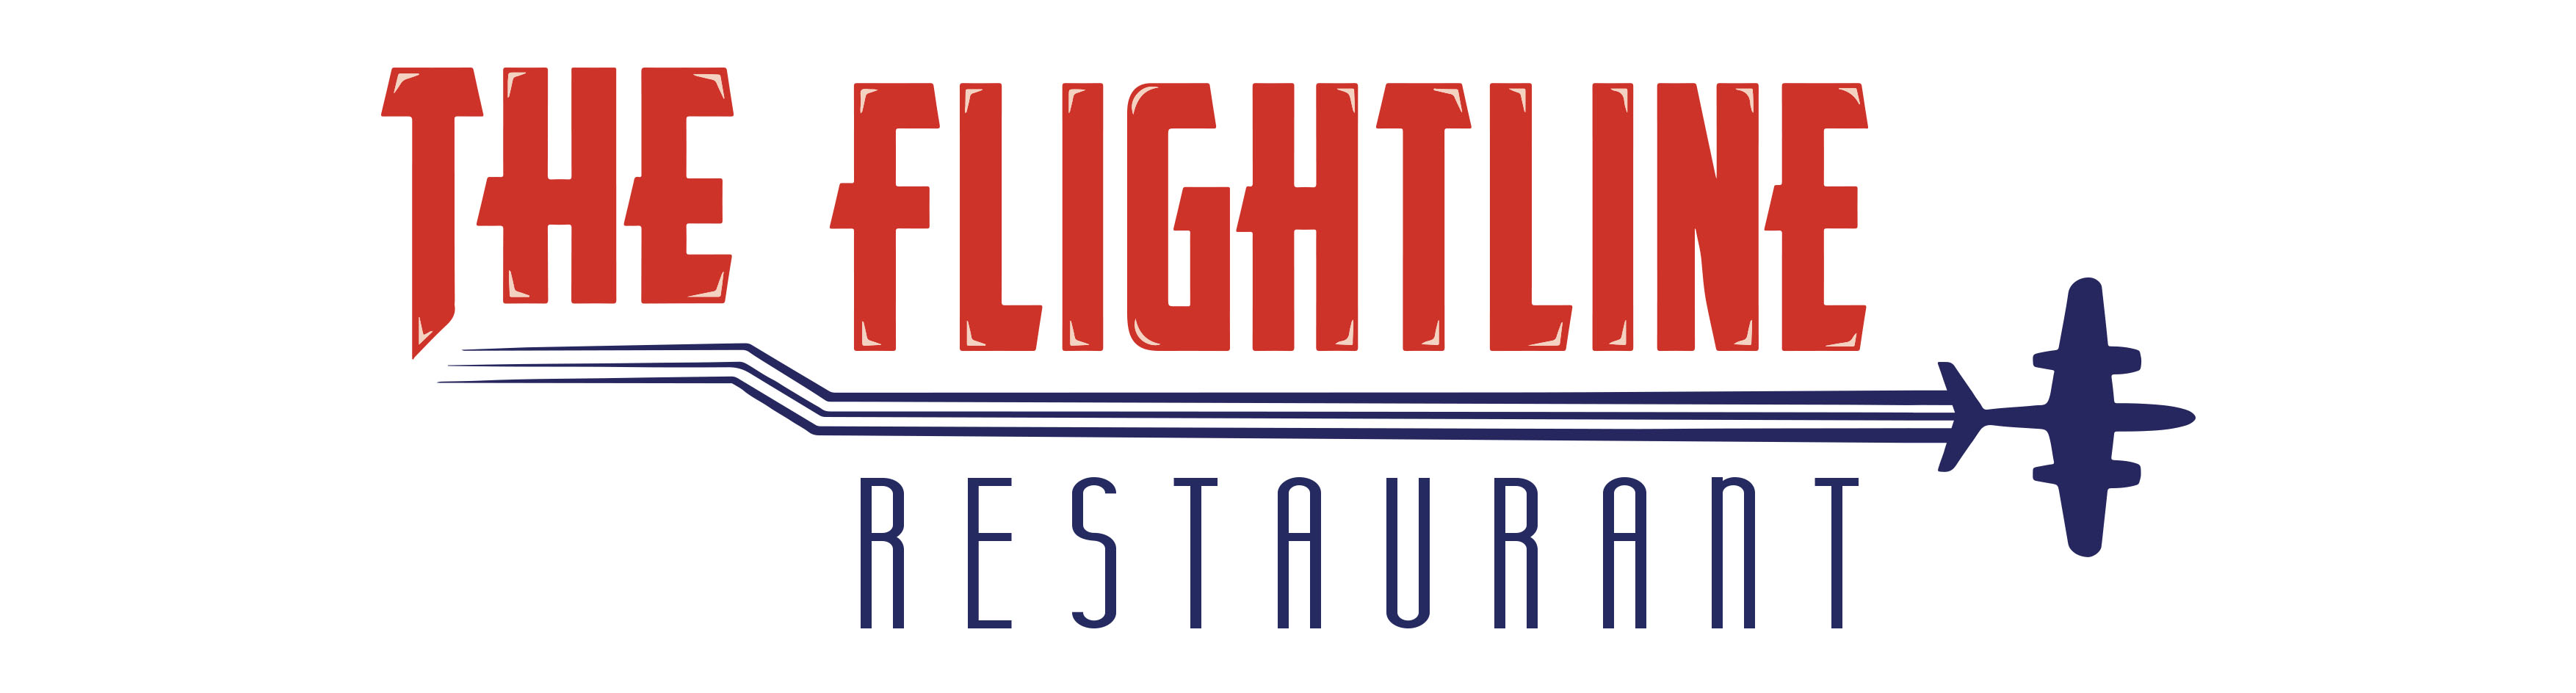 Flightline Restaurant Logo.jpg